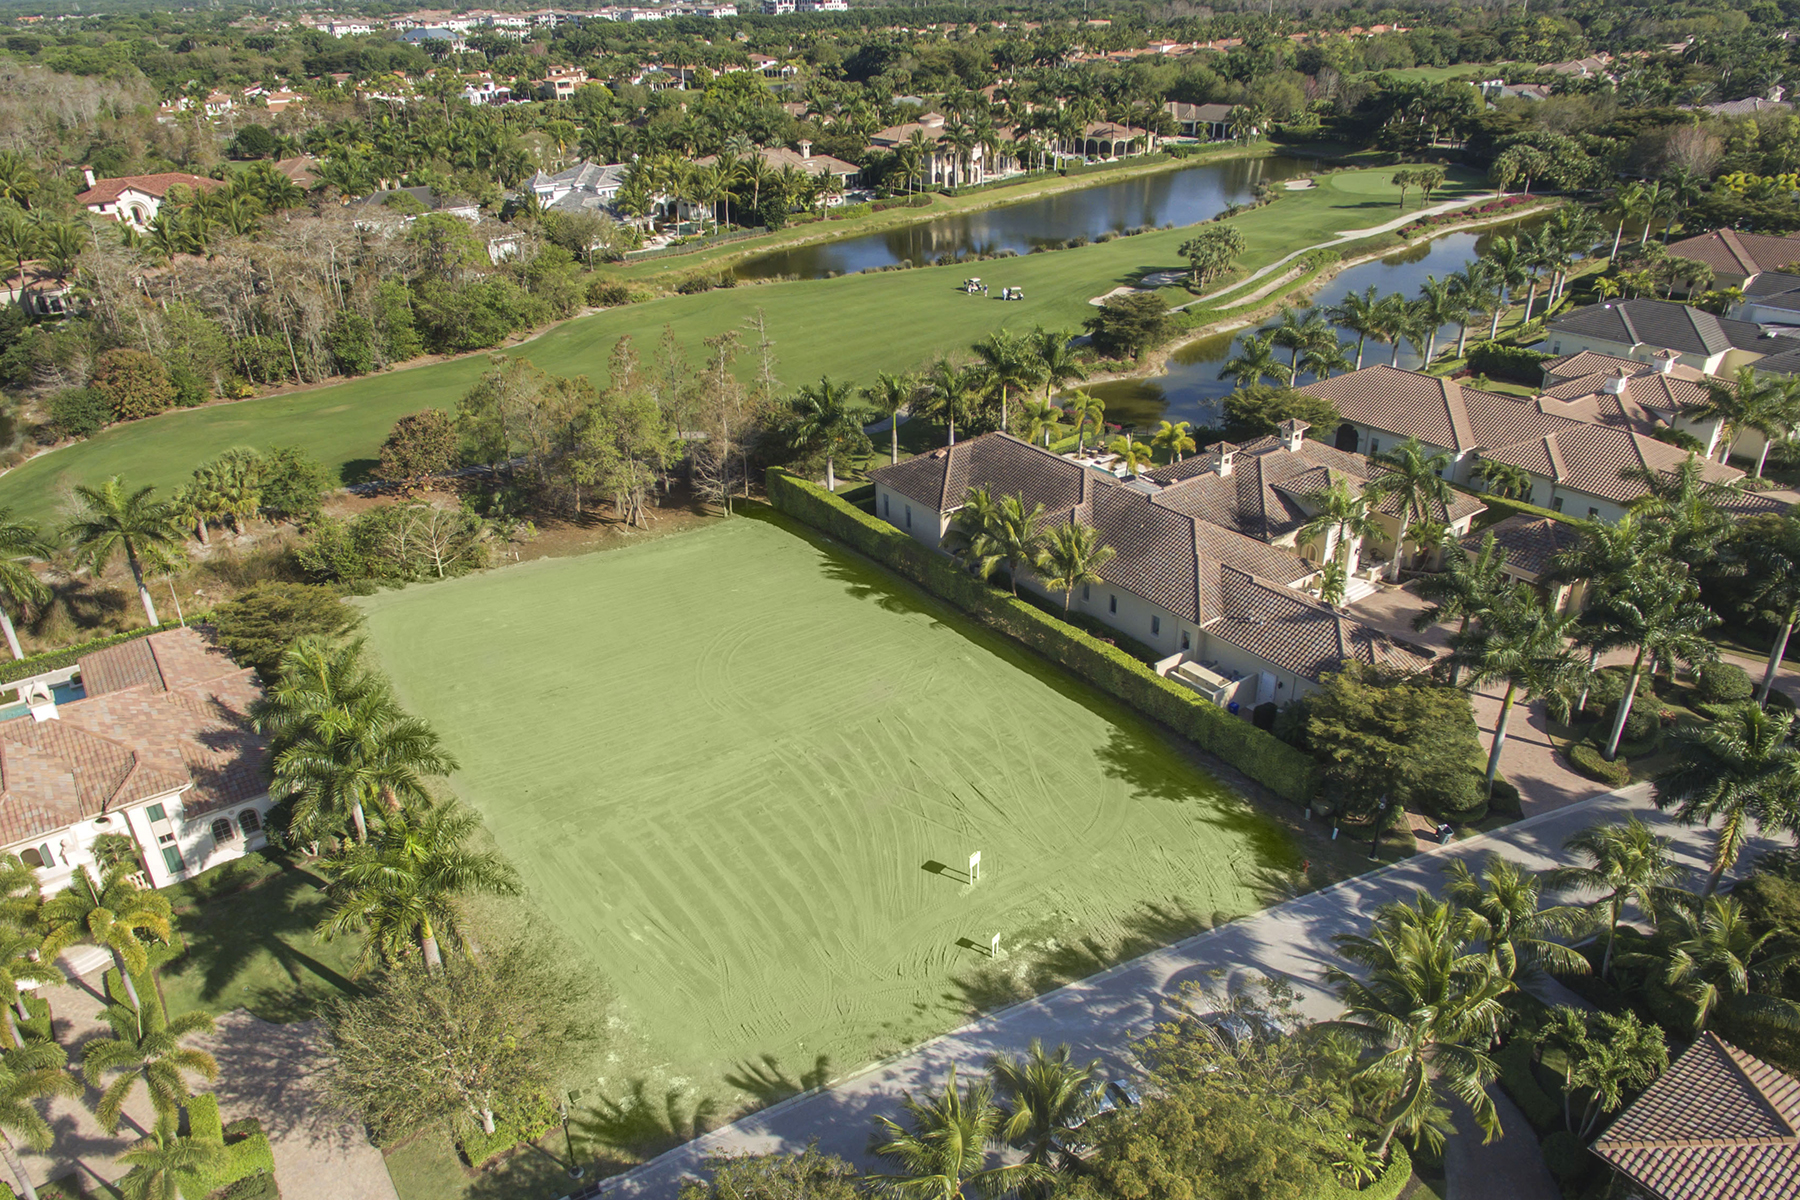 Land for Sale at ESTUARY AT GREY OAKS 1276 Osprey Trl, Naples, Florida 34105 United States